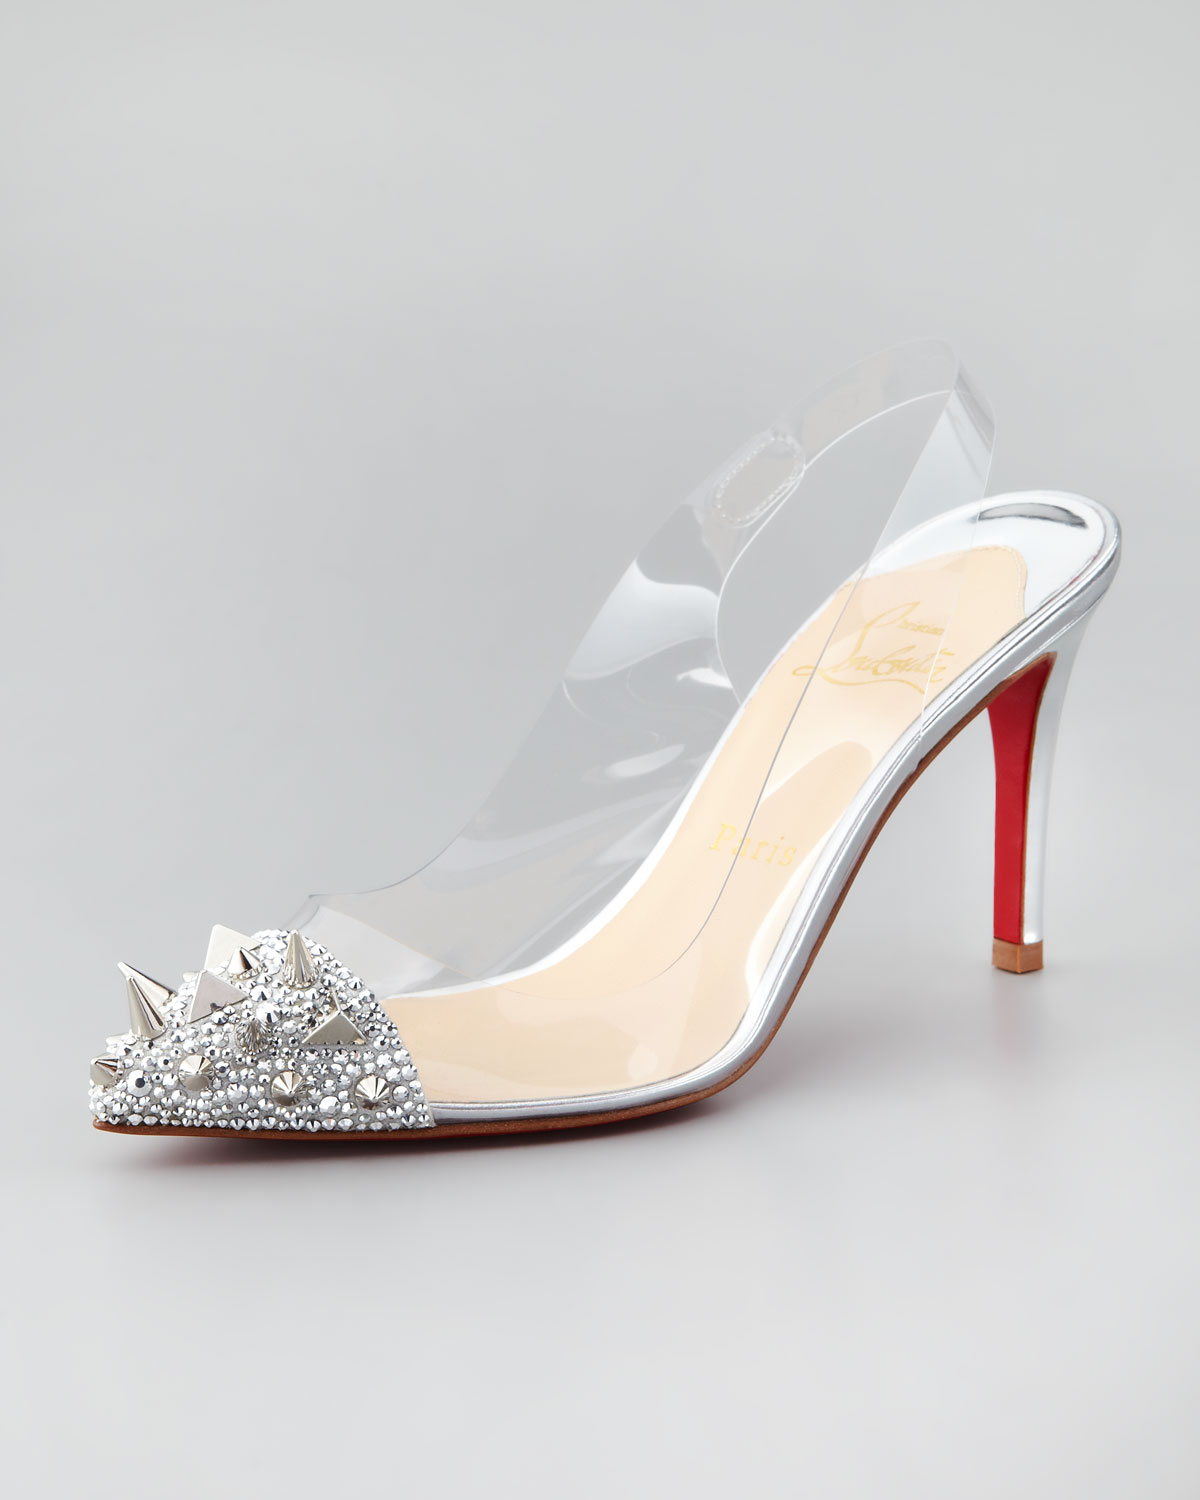 7118b82203a Lyst - Christian Louboutin Just Picks Studded Pvc Slingback Pump in ...